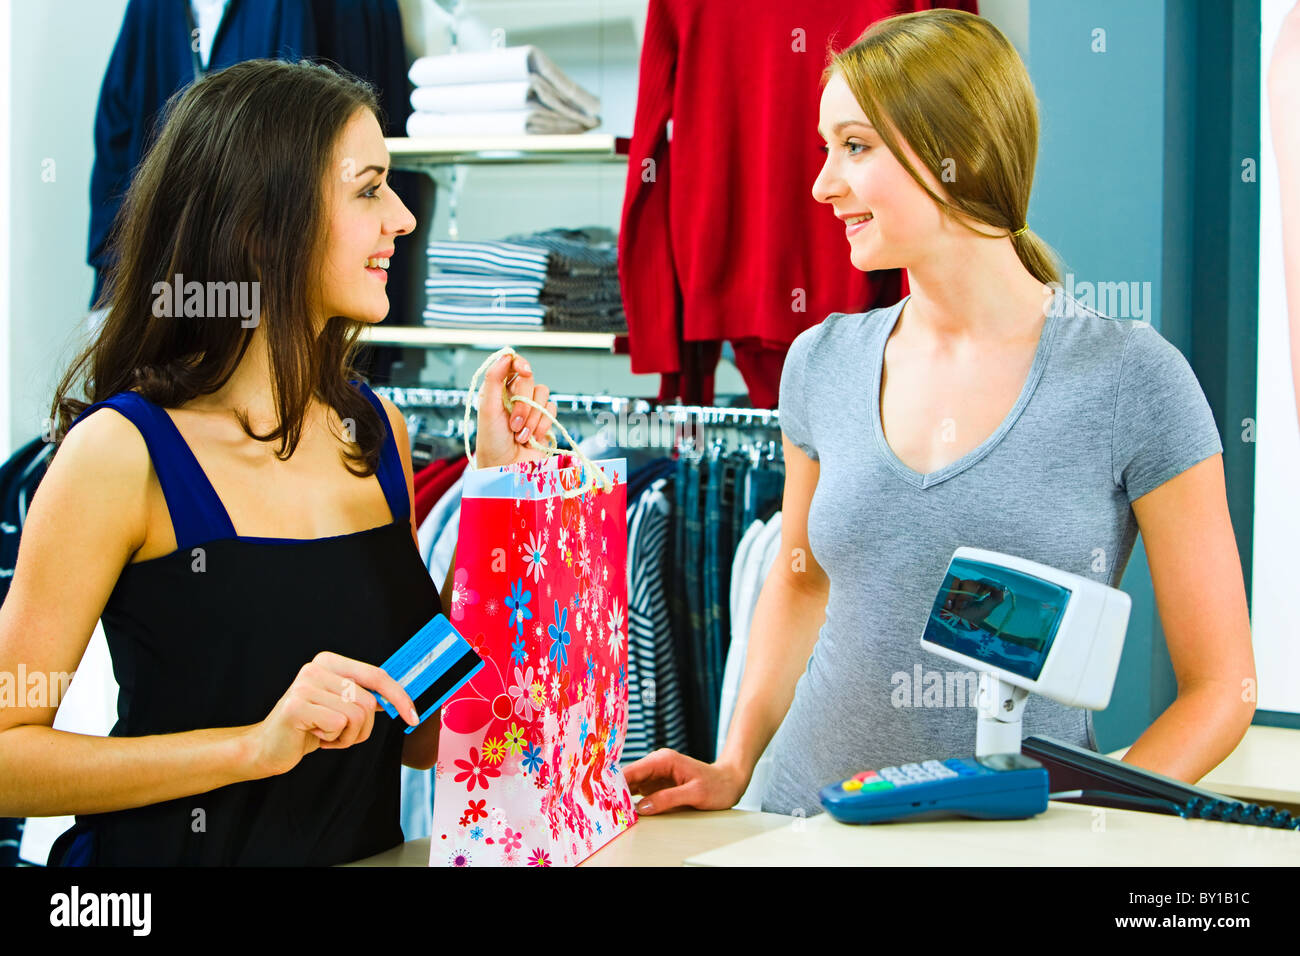 Portrait of a buyer and a shop assistant looking at each other with smiles by the pay desk in the clothing department - Stock Image